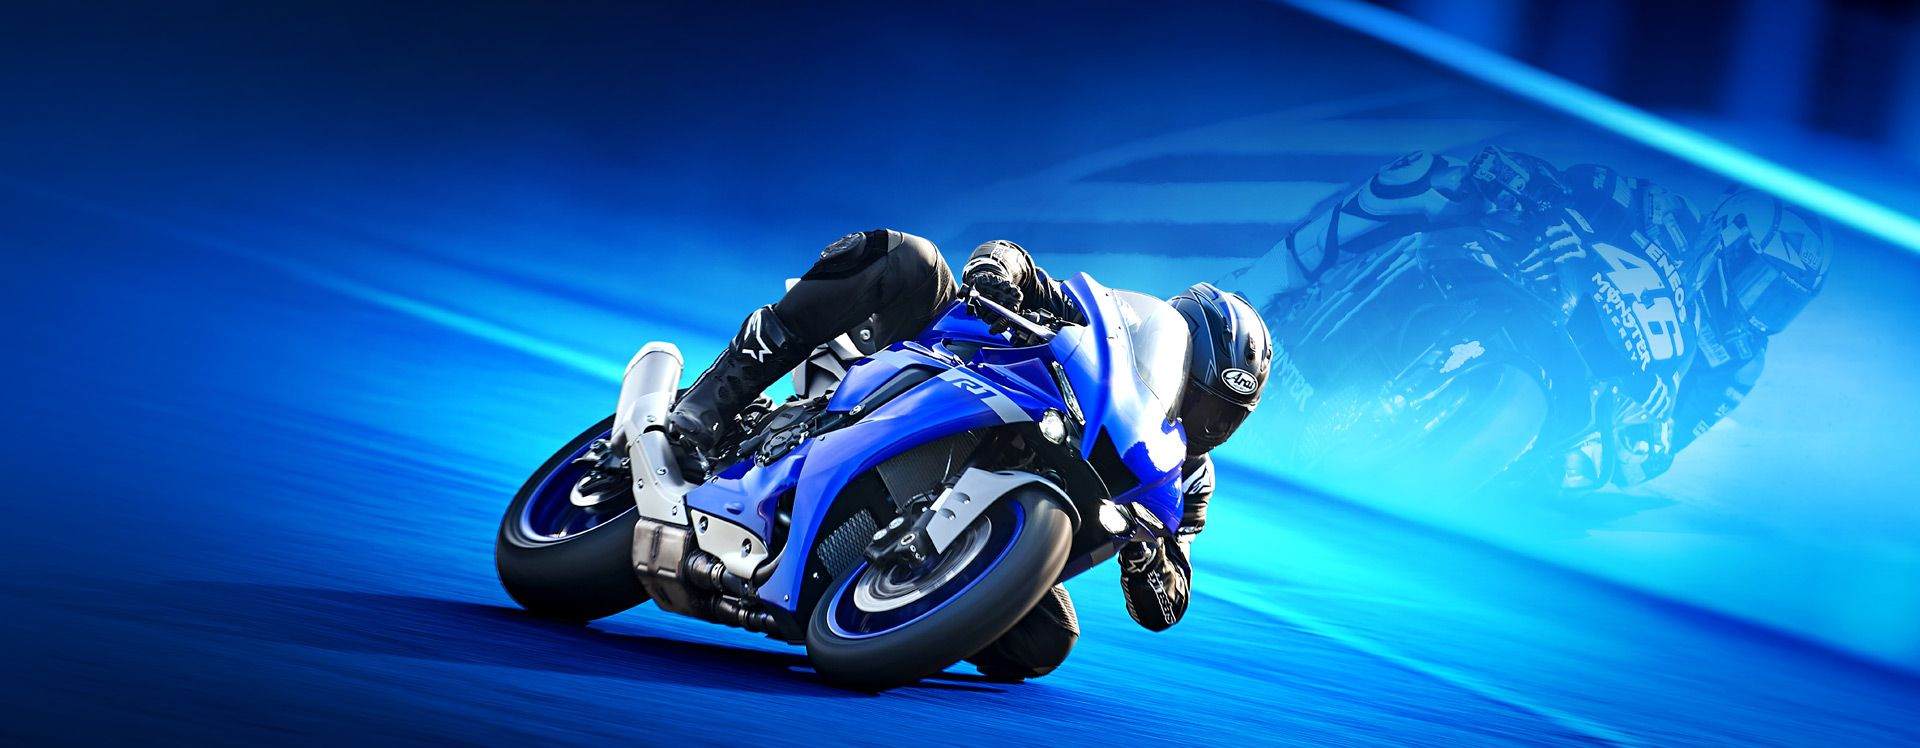 2020 Yamaha YZFR1 Supersport Motorcycle Model Home in